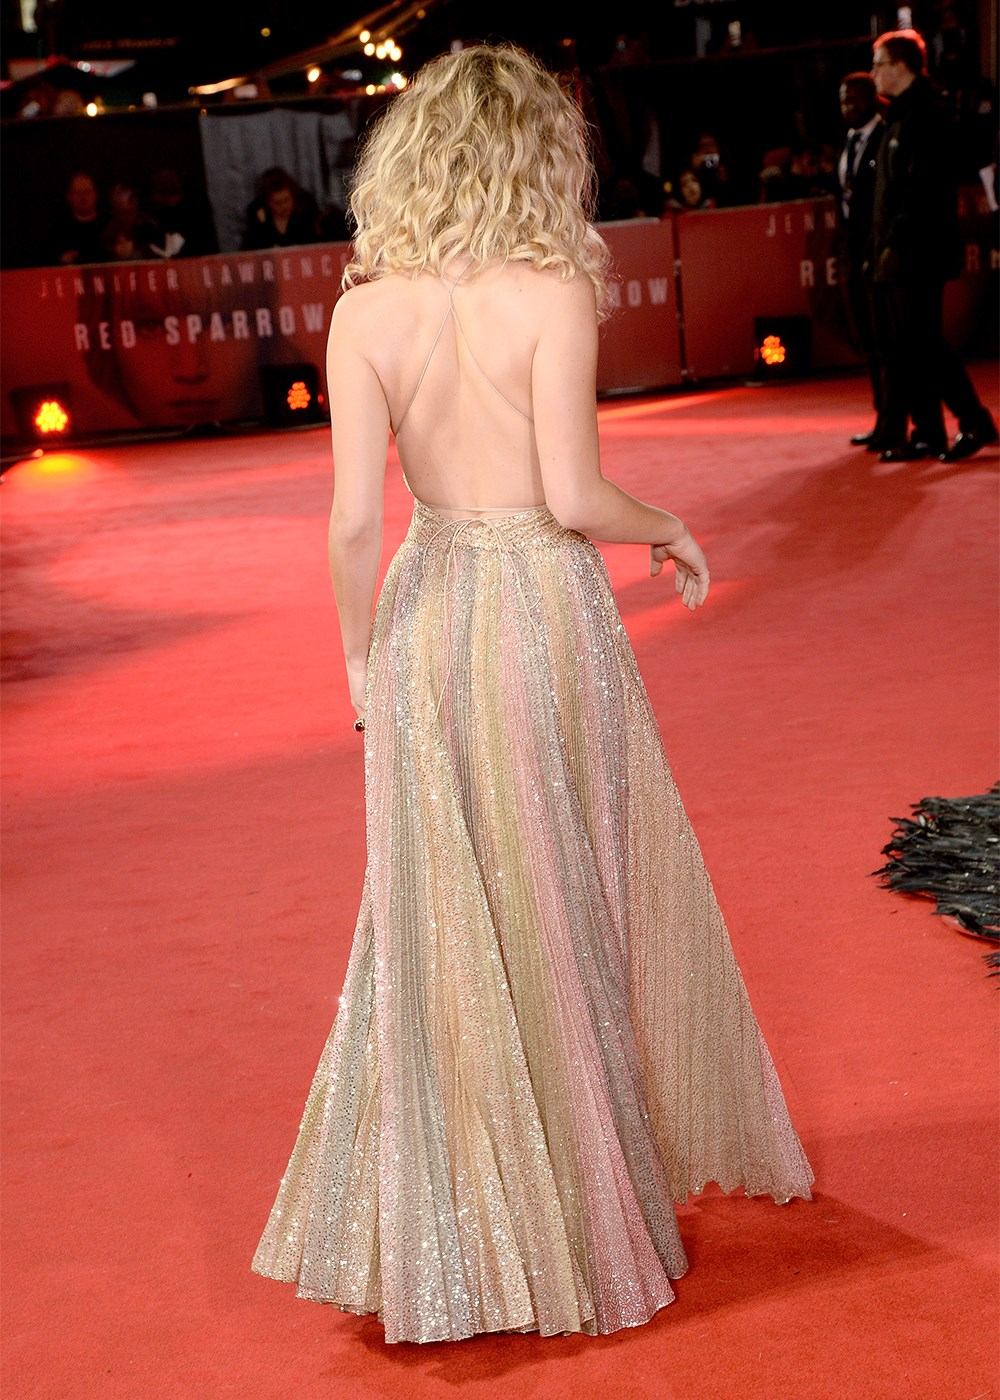 Jennifer Lawrence Bares Cleavage In Glam Gown At Red